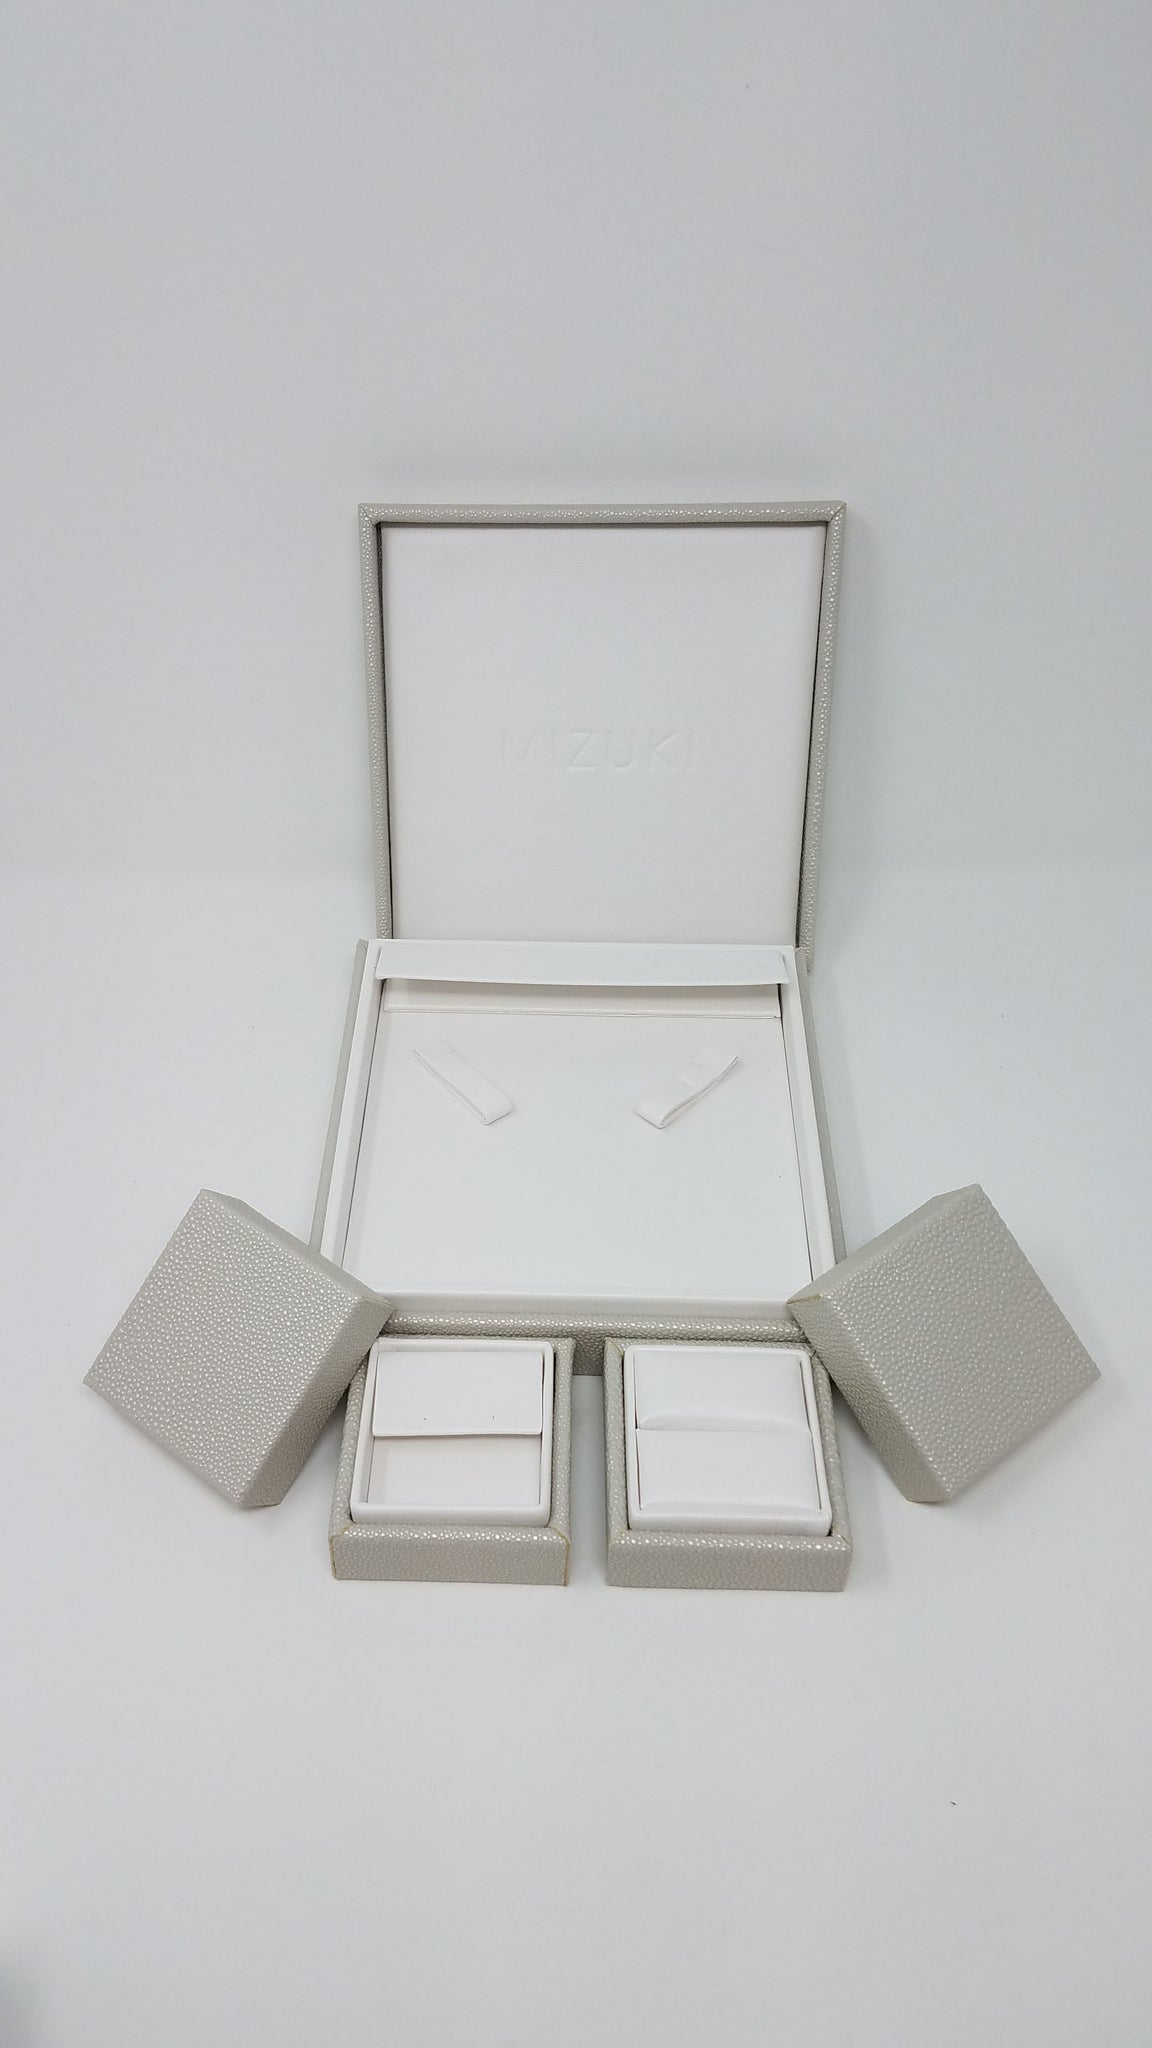 LS112C - NECKLACE BOX LIFT OFF CUSHION CAP